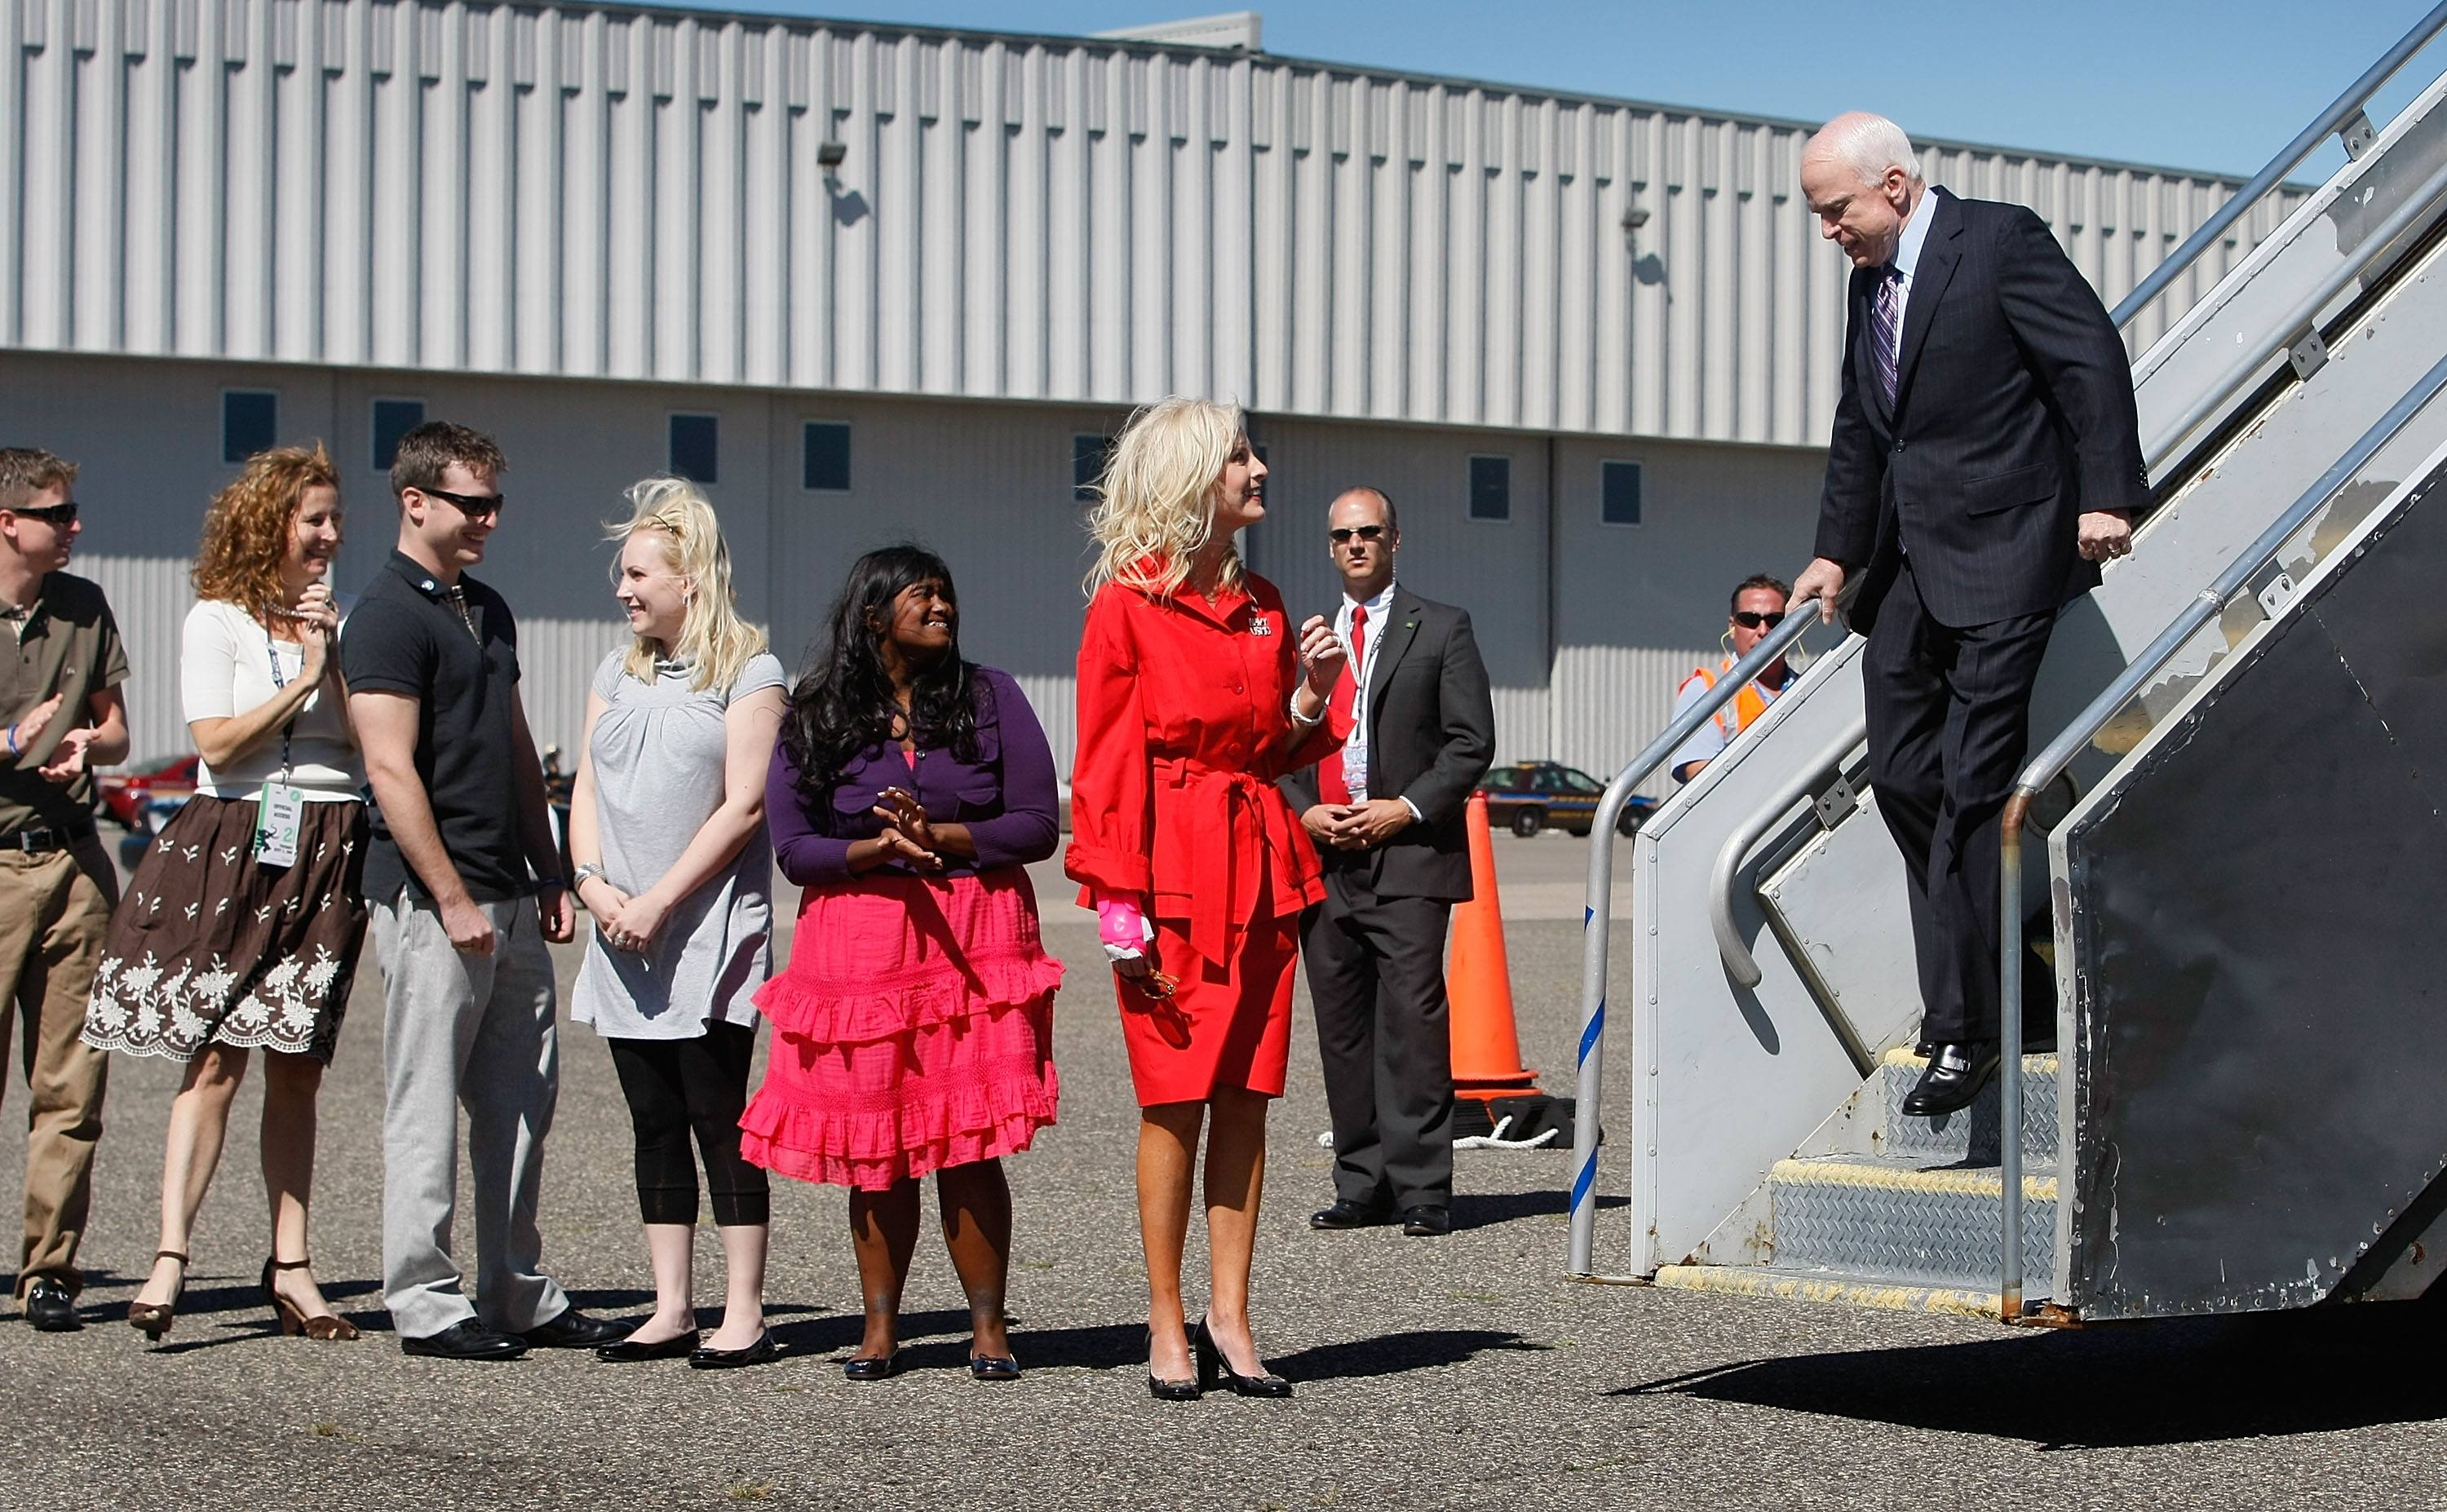 John McCain walking off plane with his family